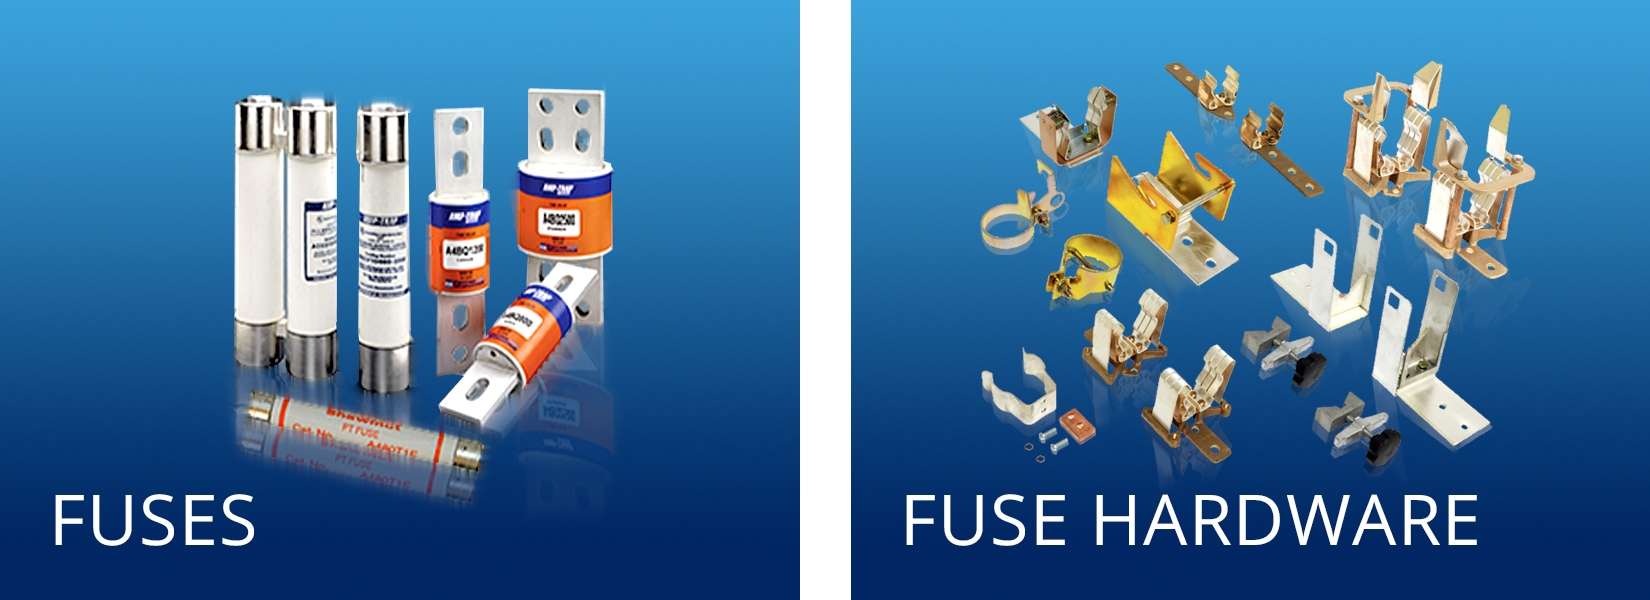 Fuses-and-fuse-hardware